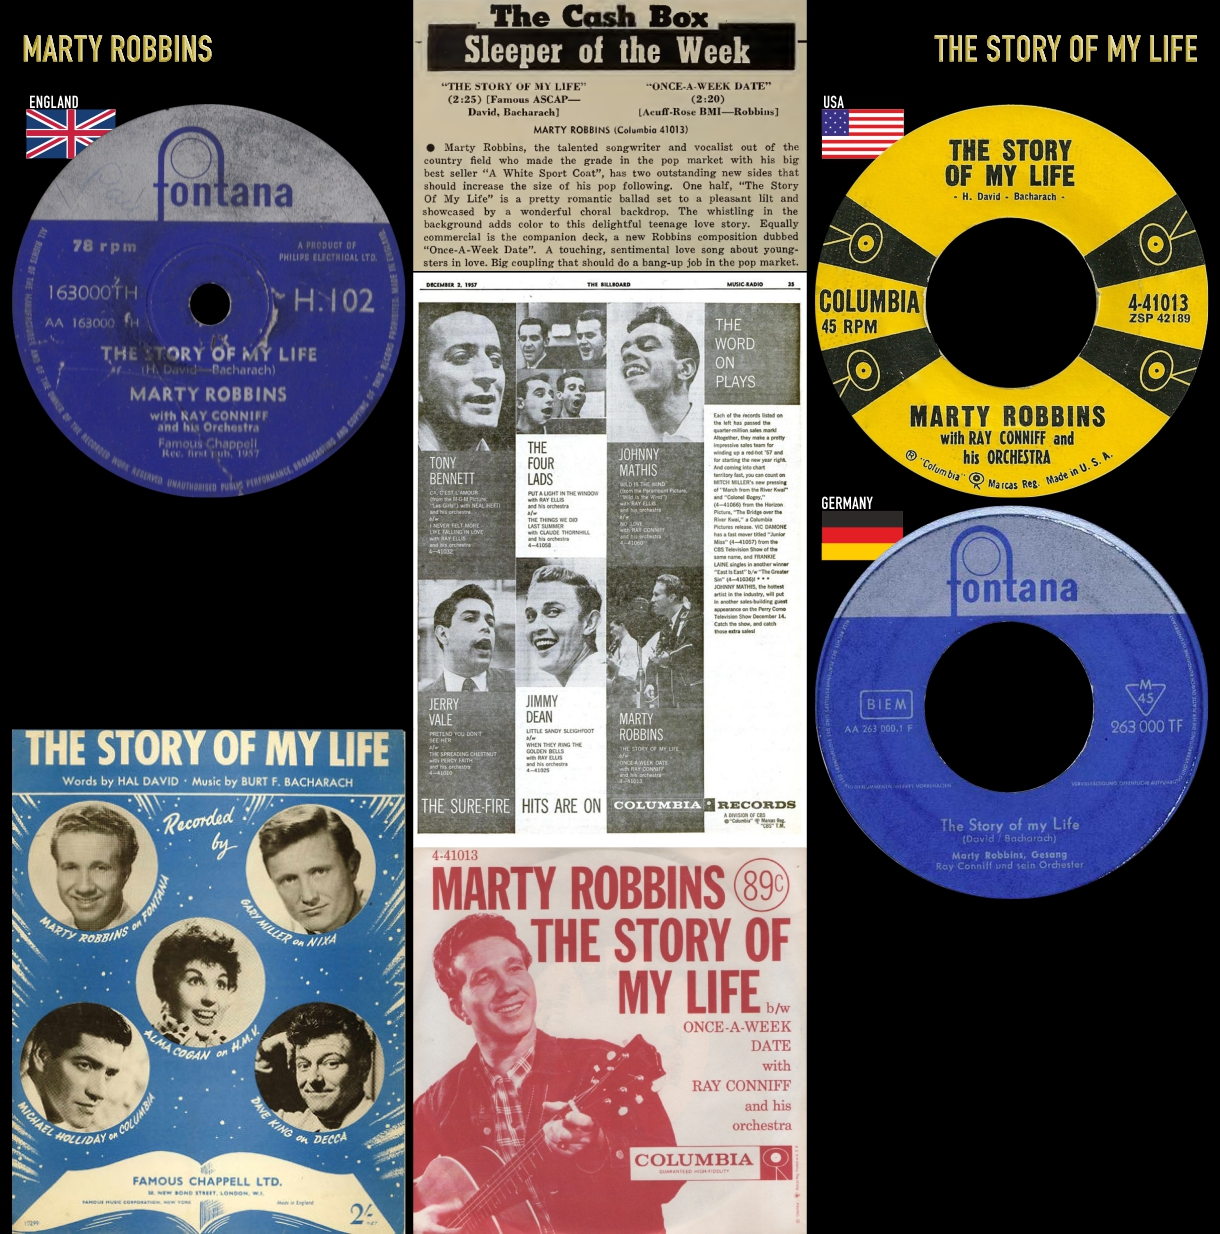 571109_Marty Robbins_The Story Of My Life